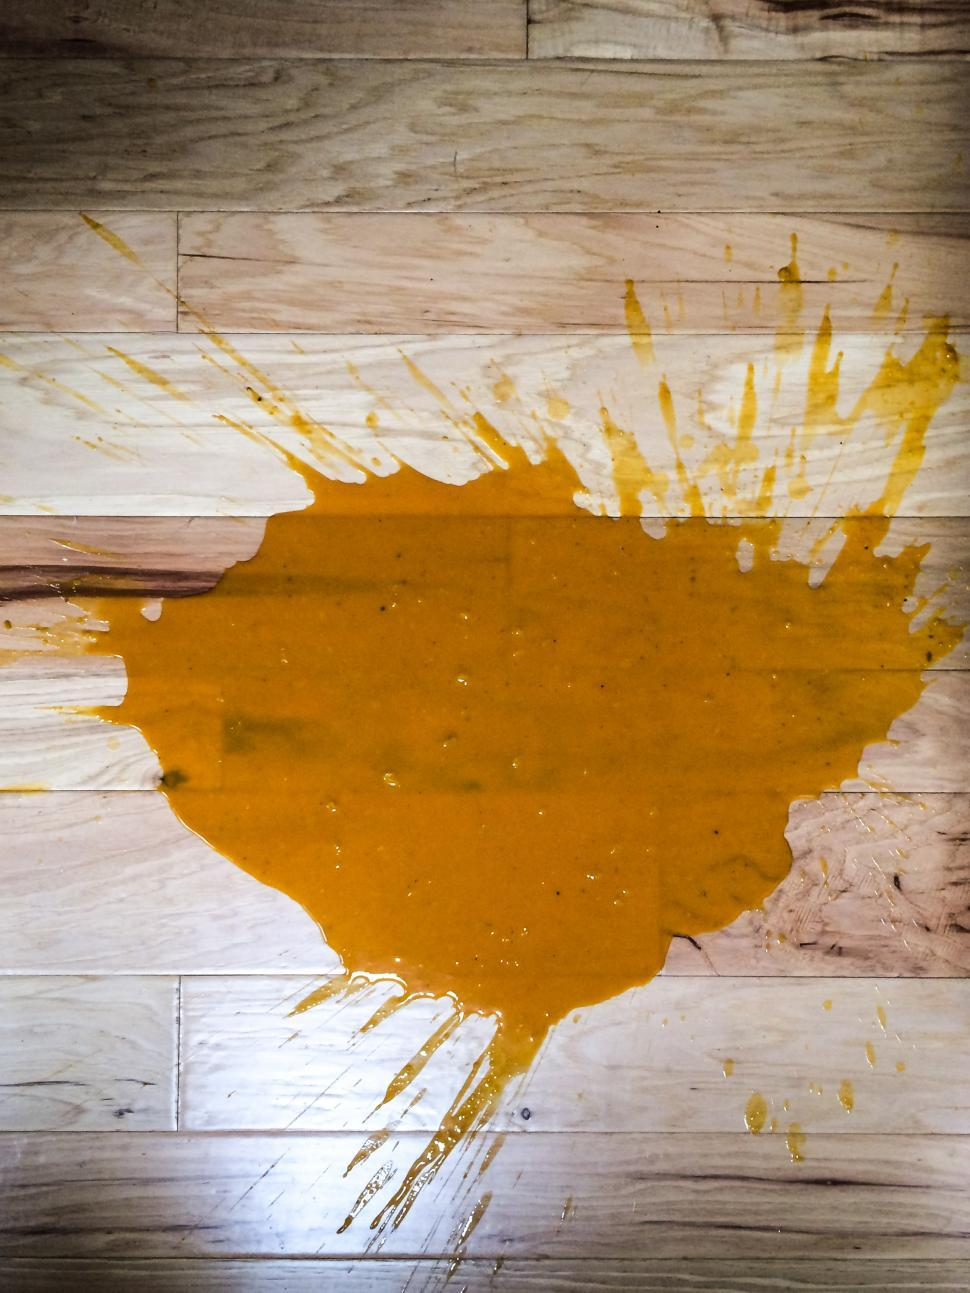 Download Free Stock HD Photo of Spill on wooden floor Online